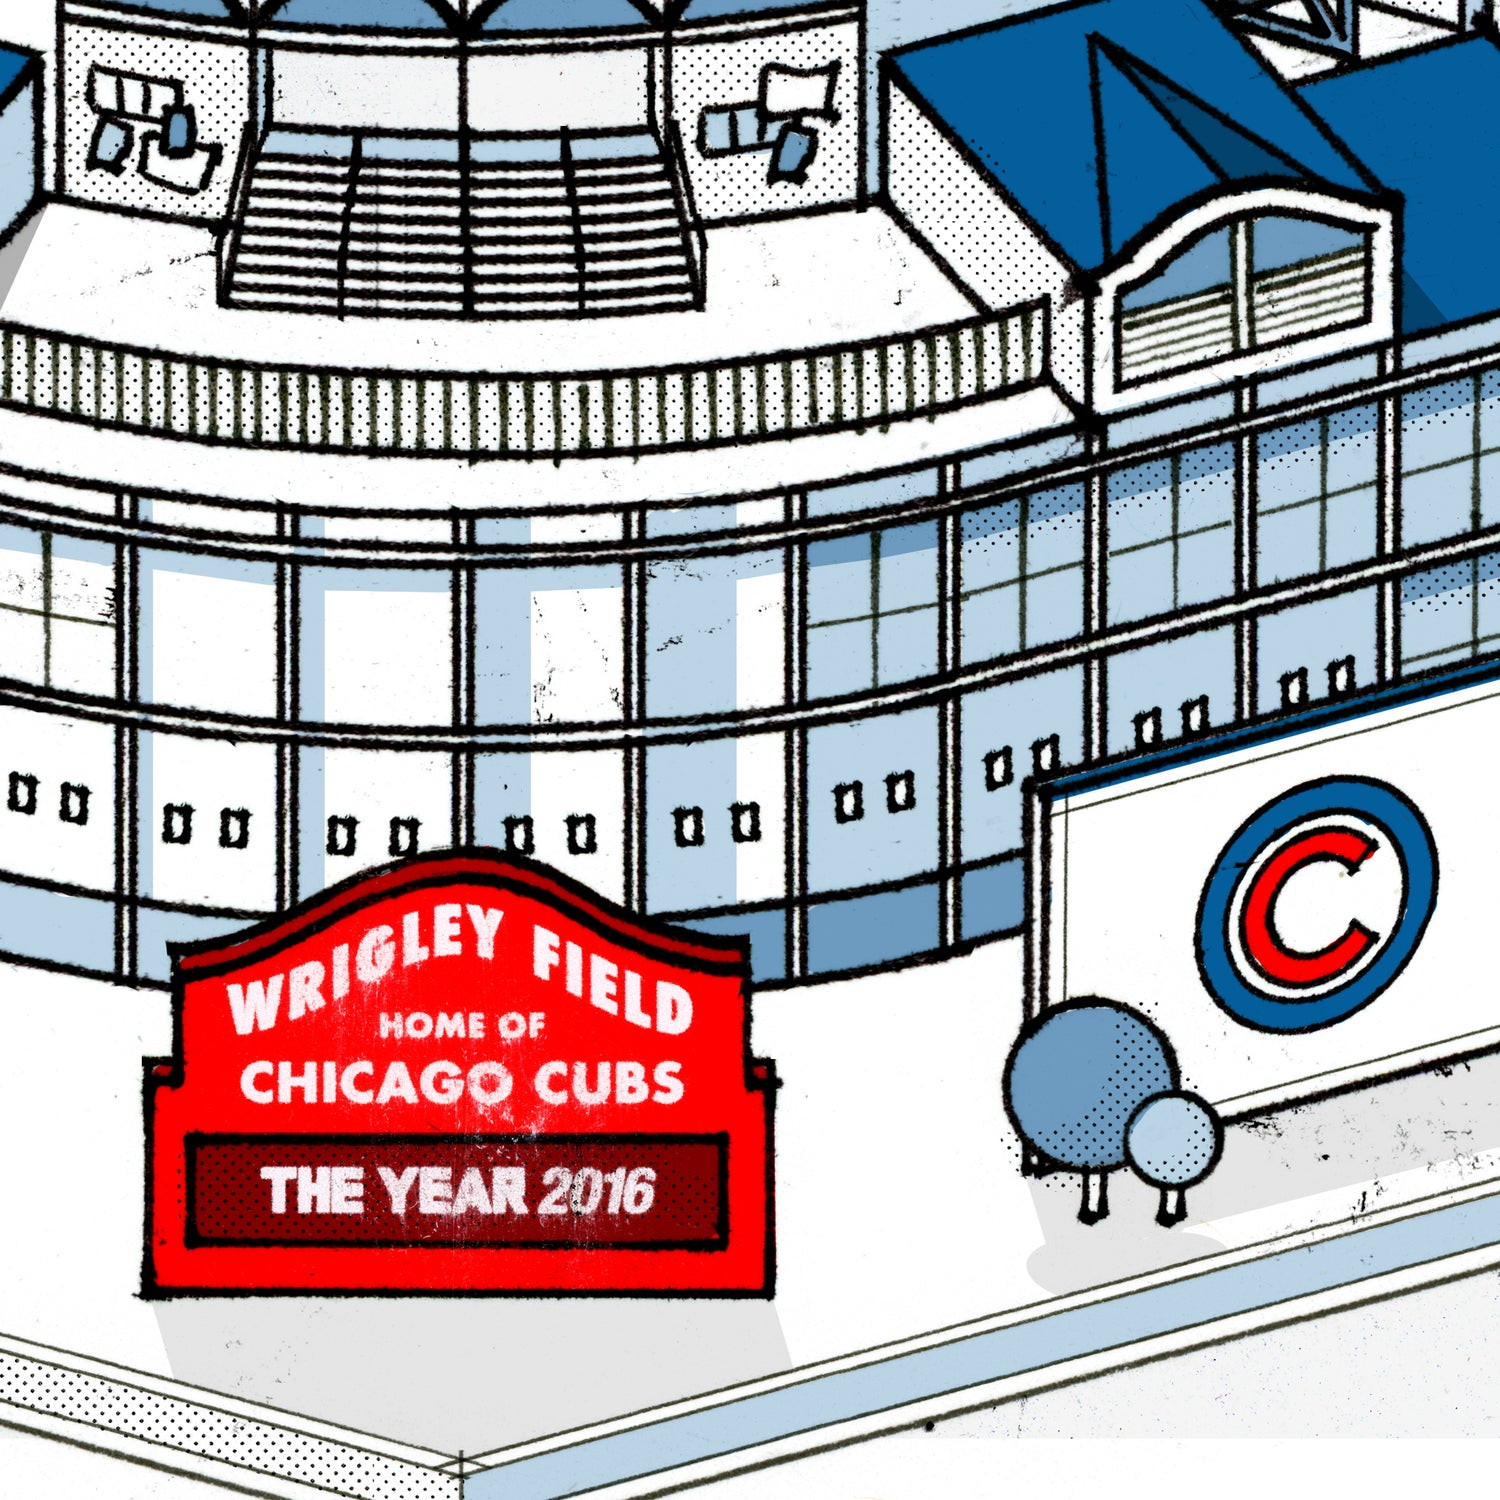 Image of Wrigley Field World Series Poster